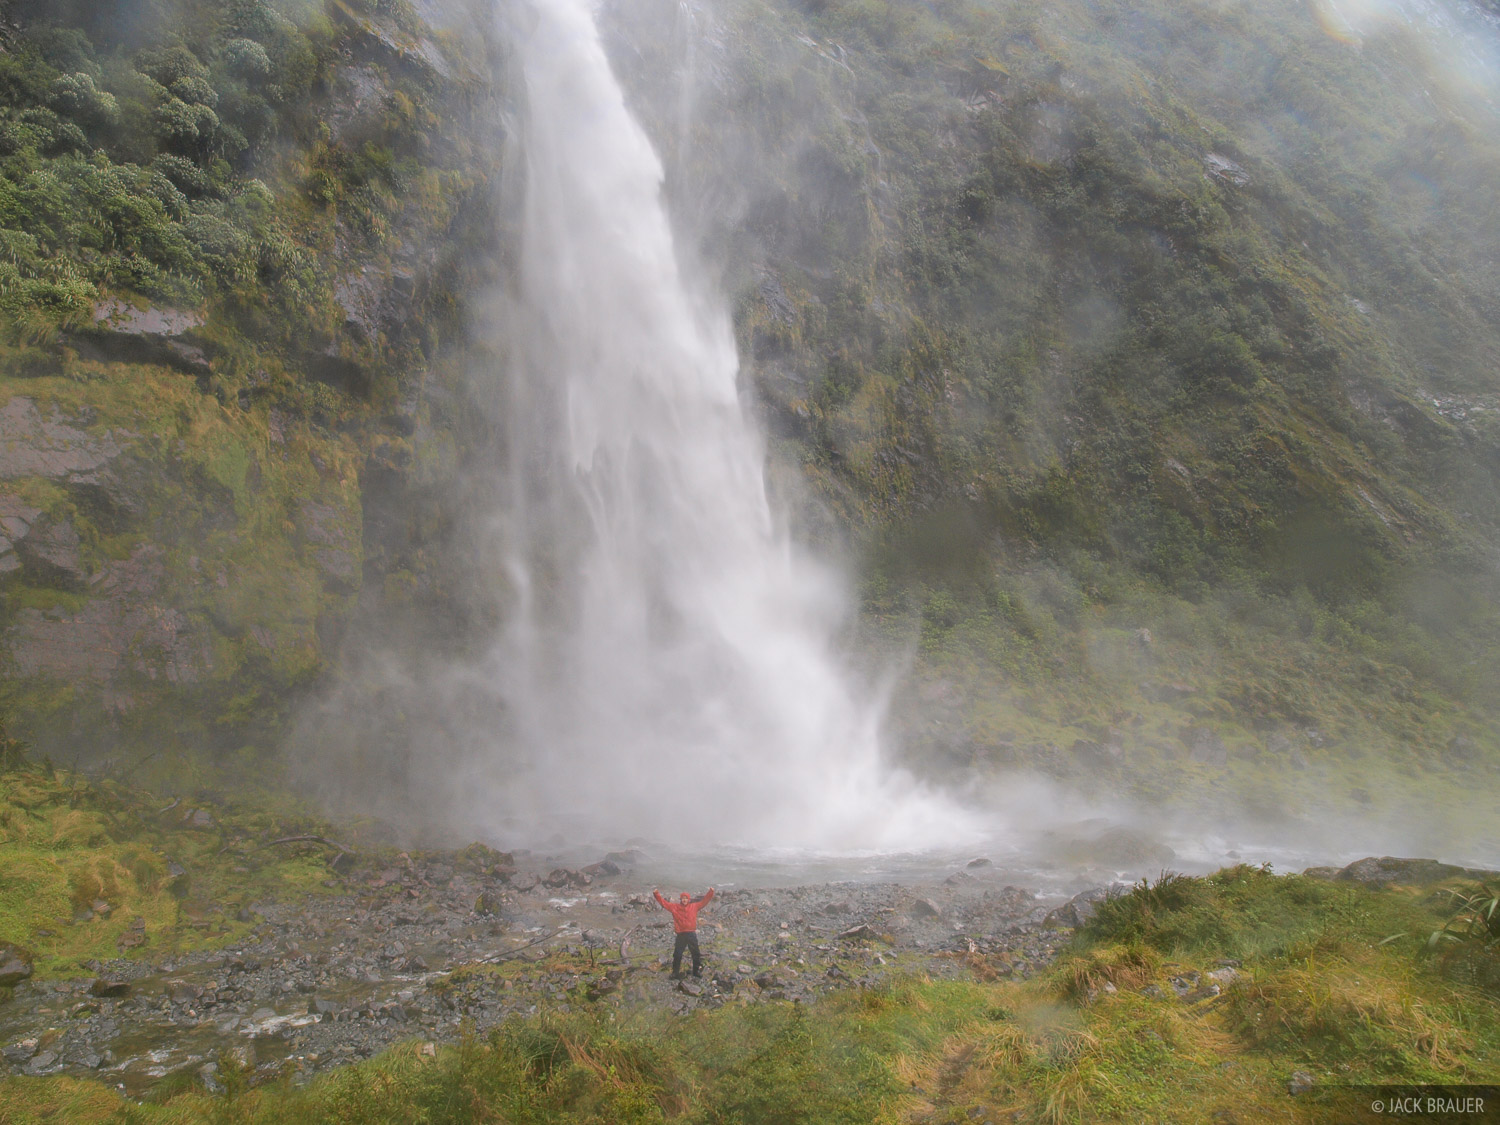 Sutherland Falls, along the Milford Track, drop 580m (1904 ft.), making them one of the tallest waterfalls in New Zealand.